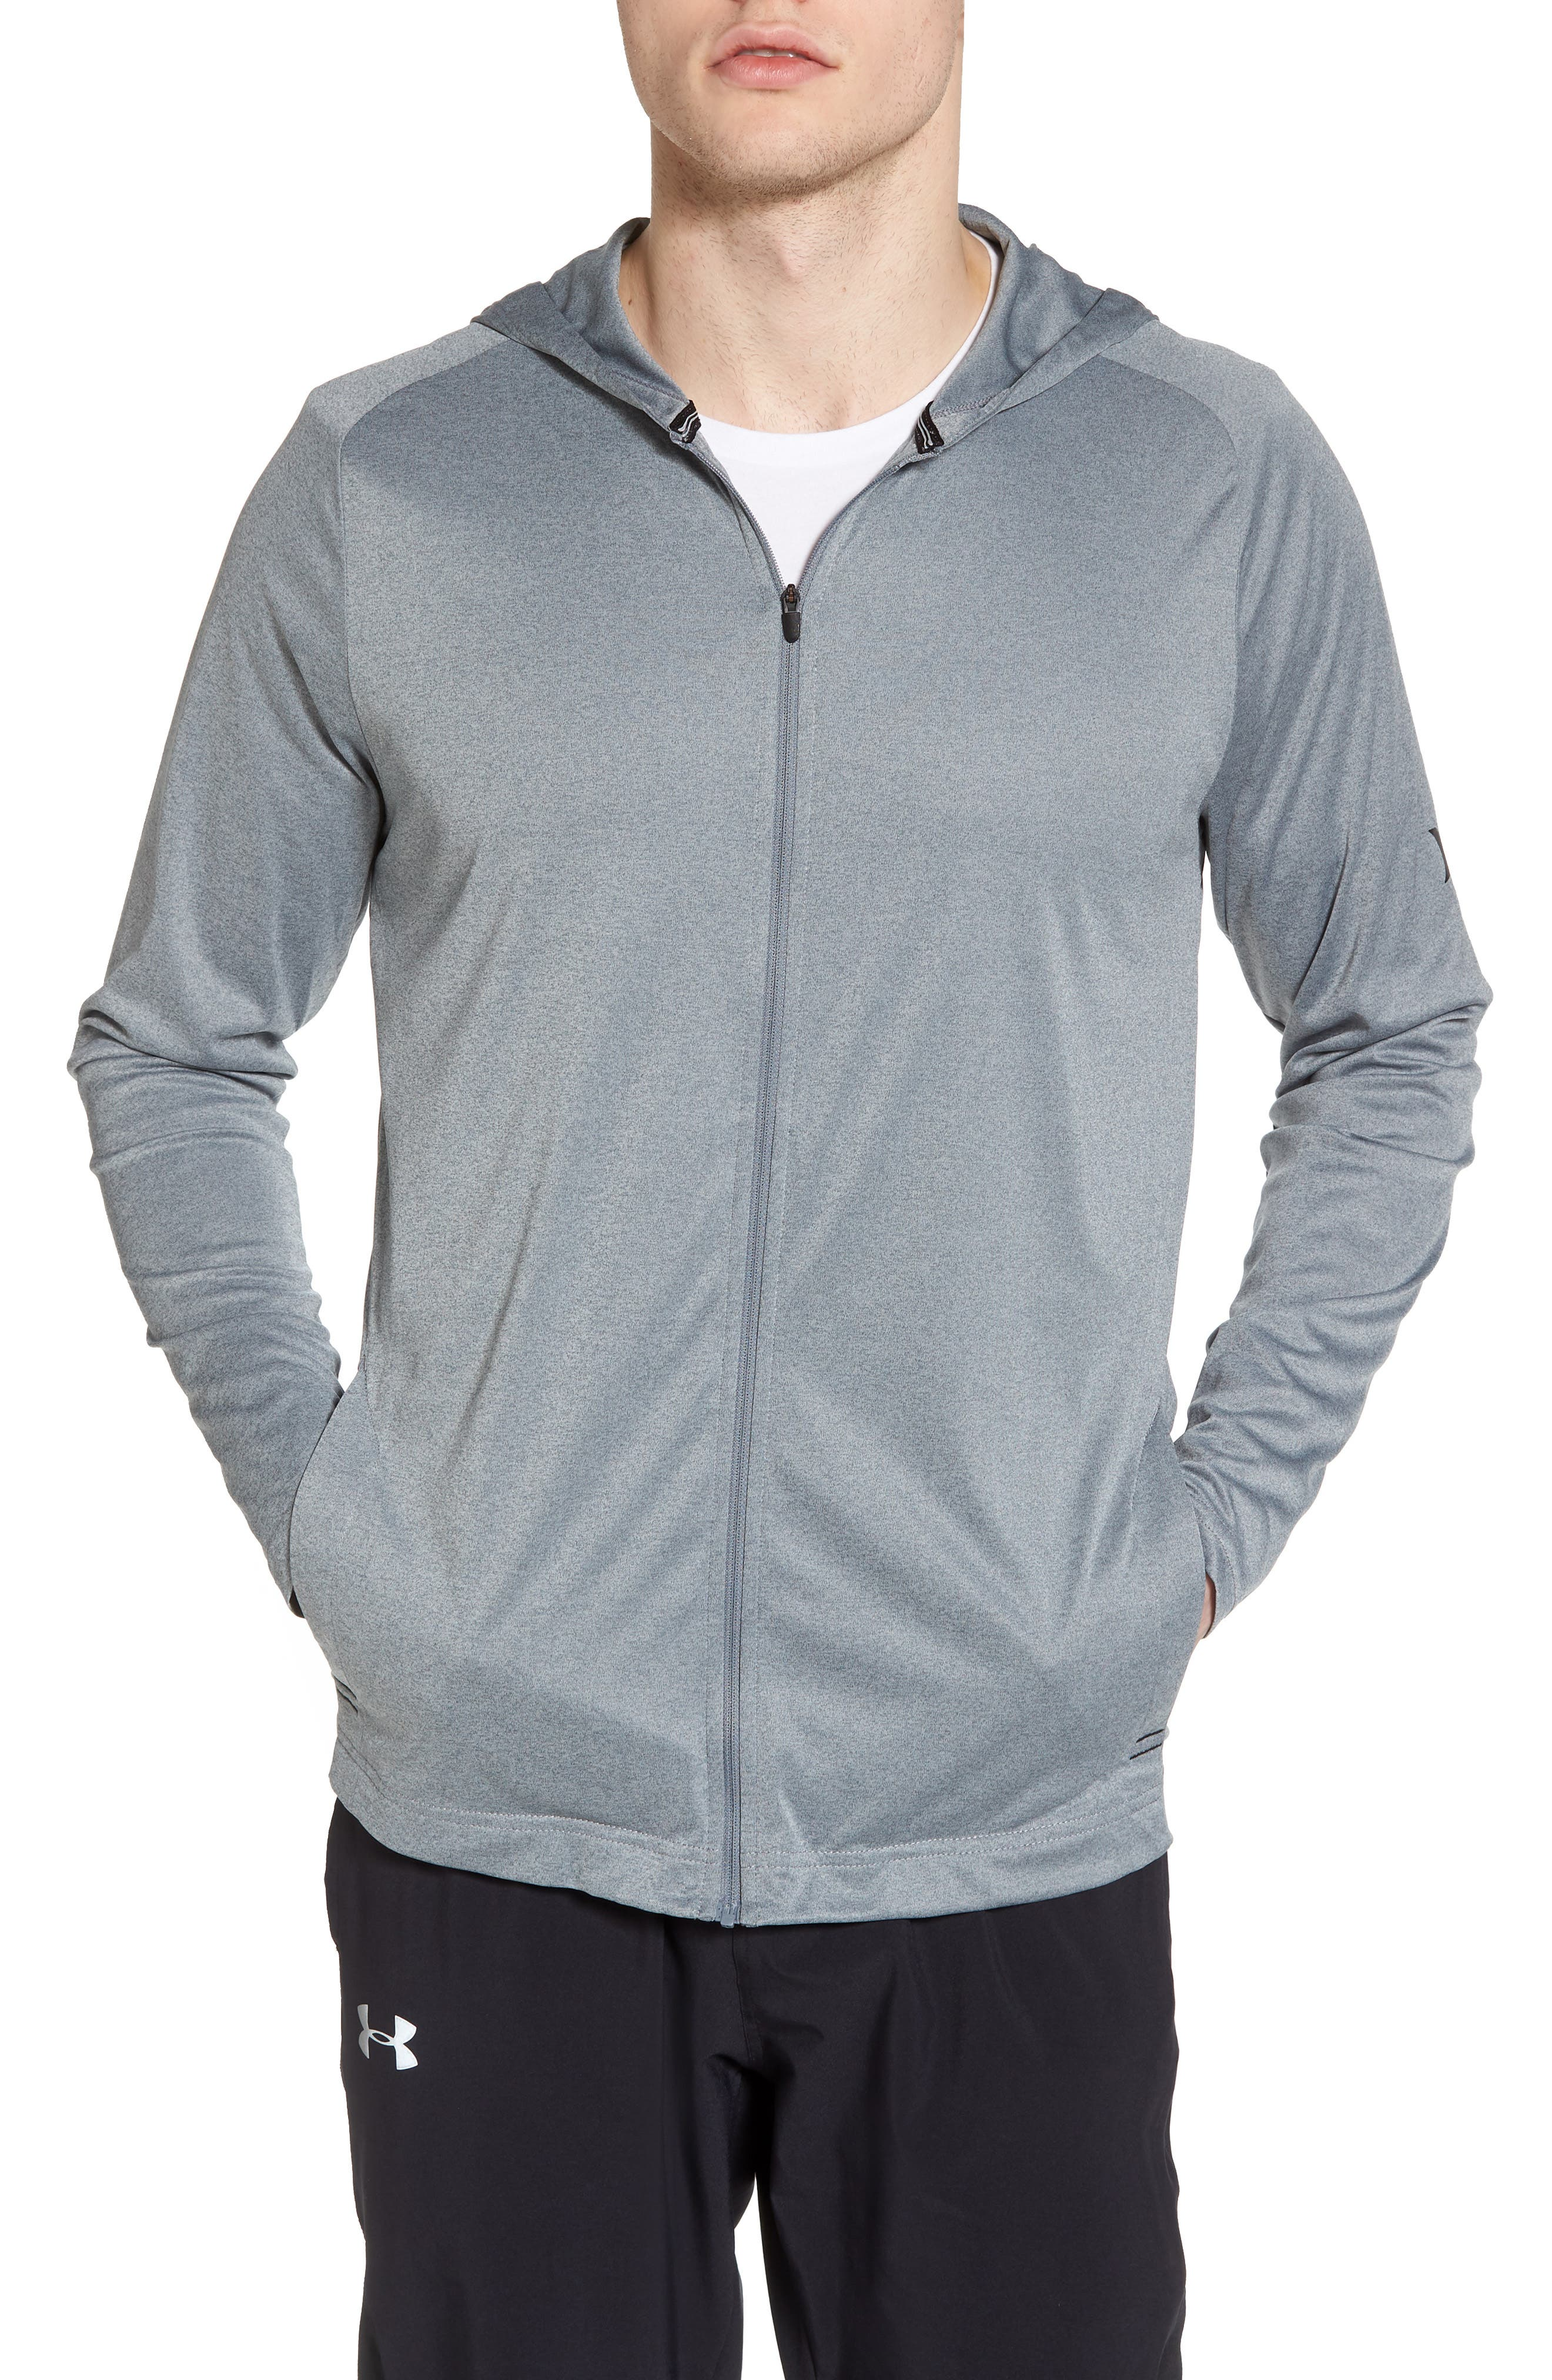 Icon Quick Dry Zip Hoodie,                             Main thumbnail 1, color,                             Cool Grey Htr